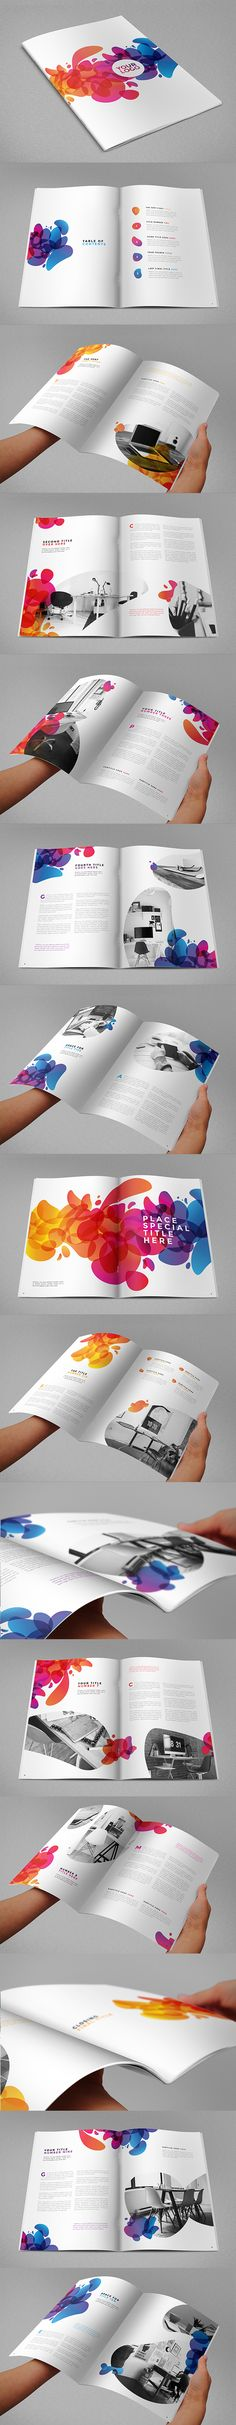 Colorful Abstract Brochure. Download here: http://graphicriver.net/item/colorful-abstract-brochure/12865105?ref=abradesign